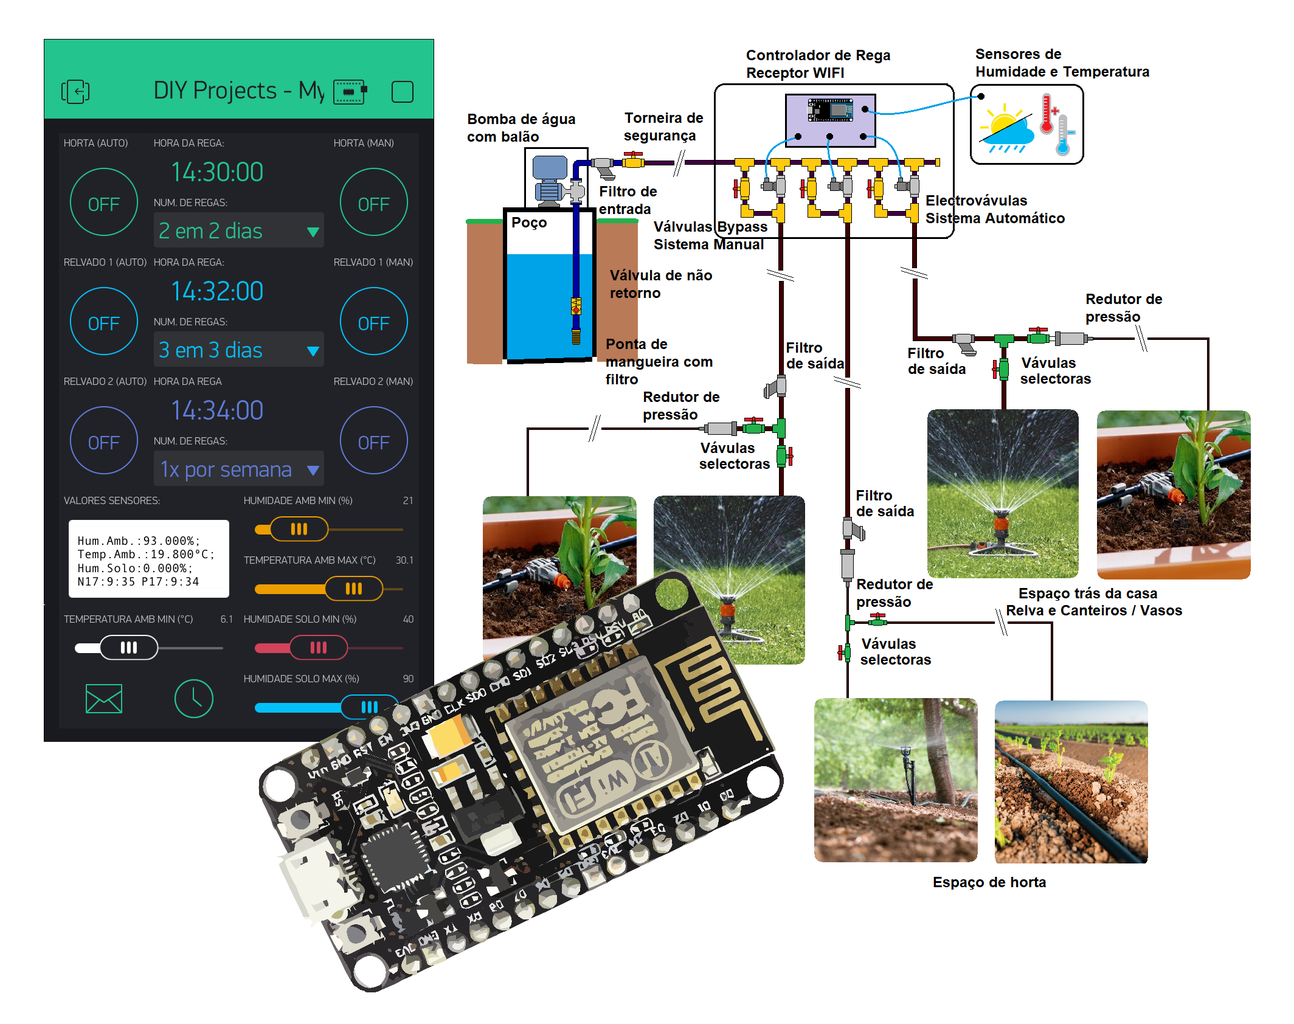 DIY Projects - My Automatic Irrigation System